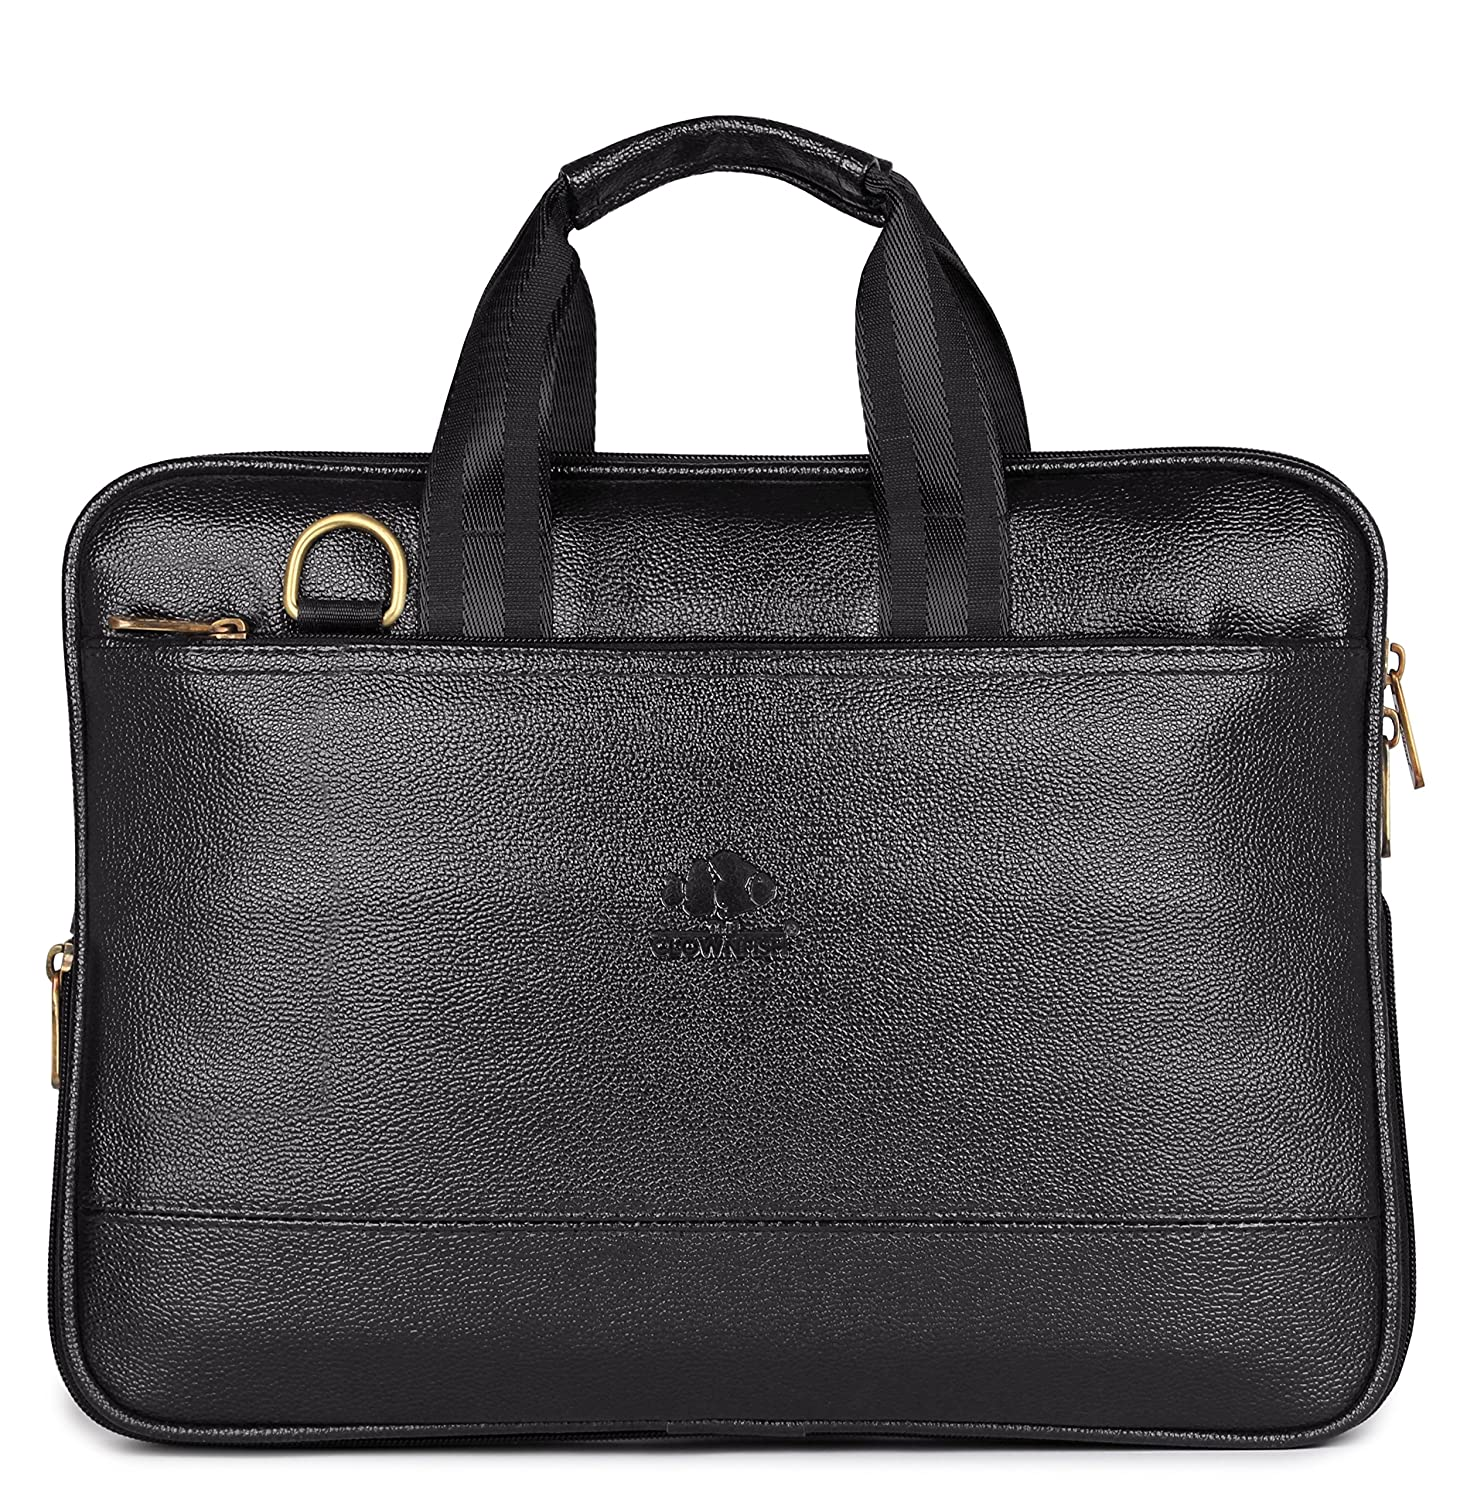 59370323cfd8 The Clownfish 8 Liter Laptop Briefcase (Black)  Amazon.in  Clothing    Accessories